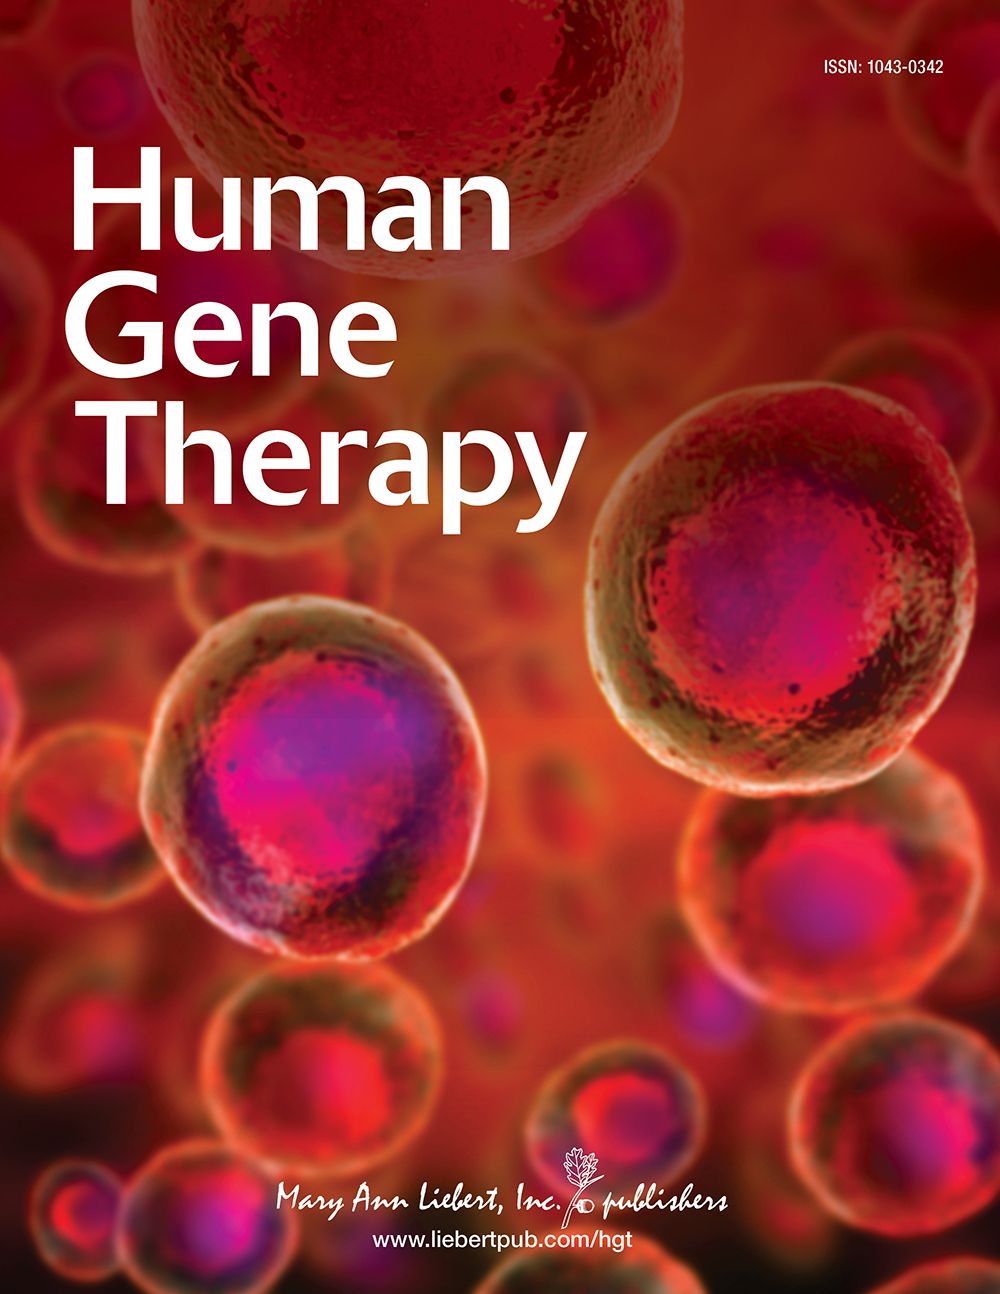 Human Gene Therapy Journal Cover